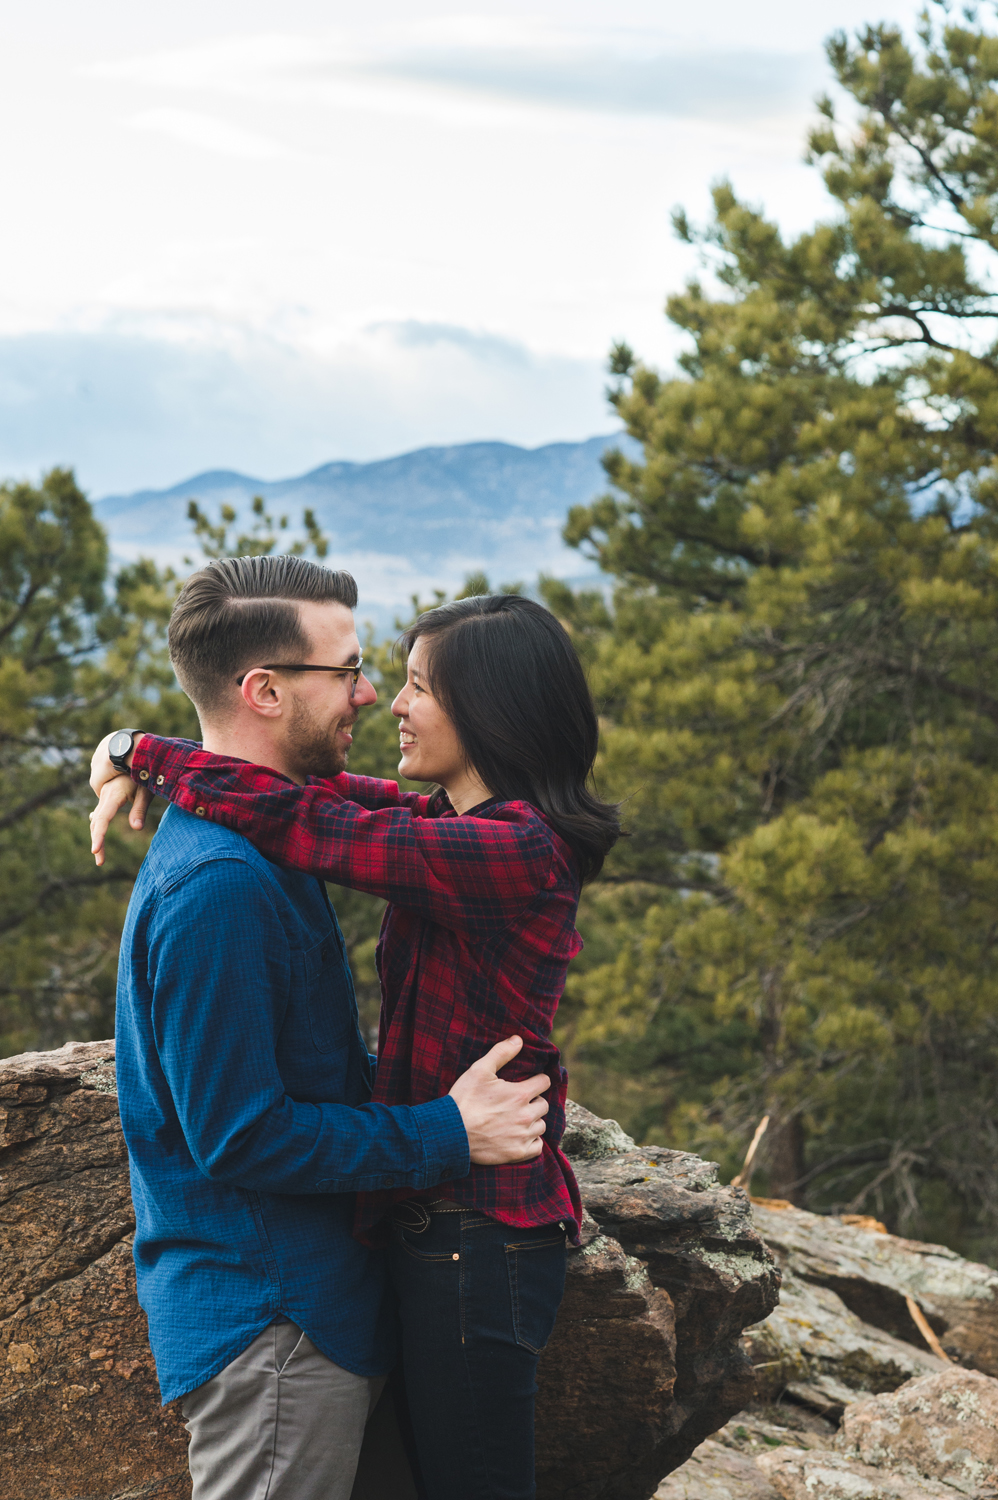 TiffanyandMark_Engaged_0949_squarespace.jpg